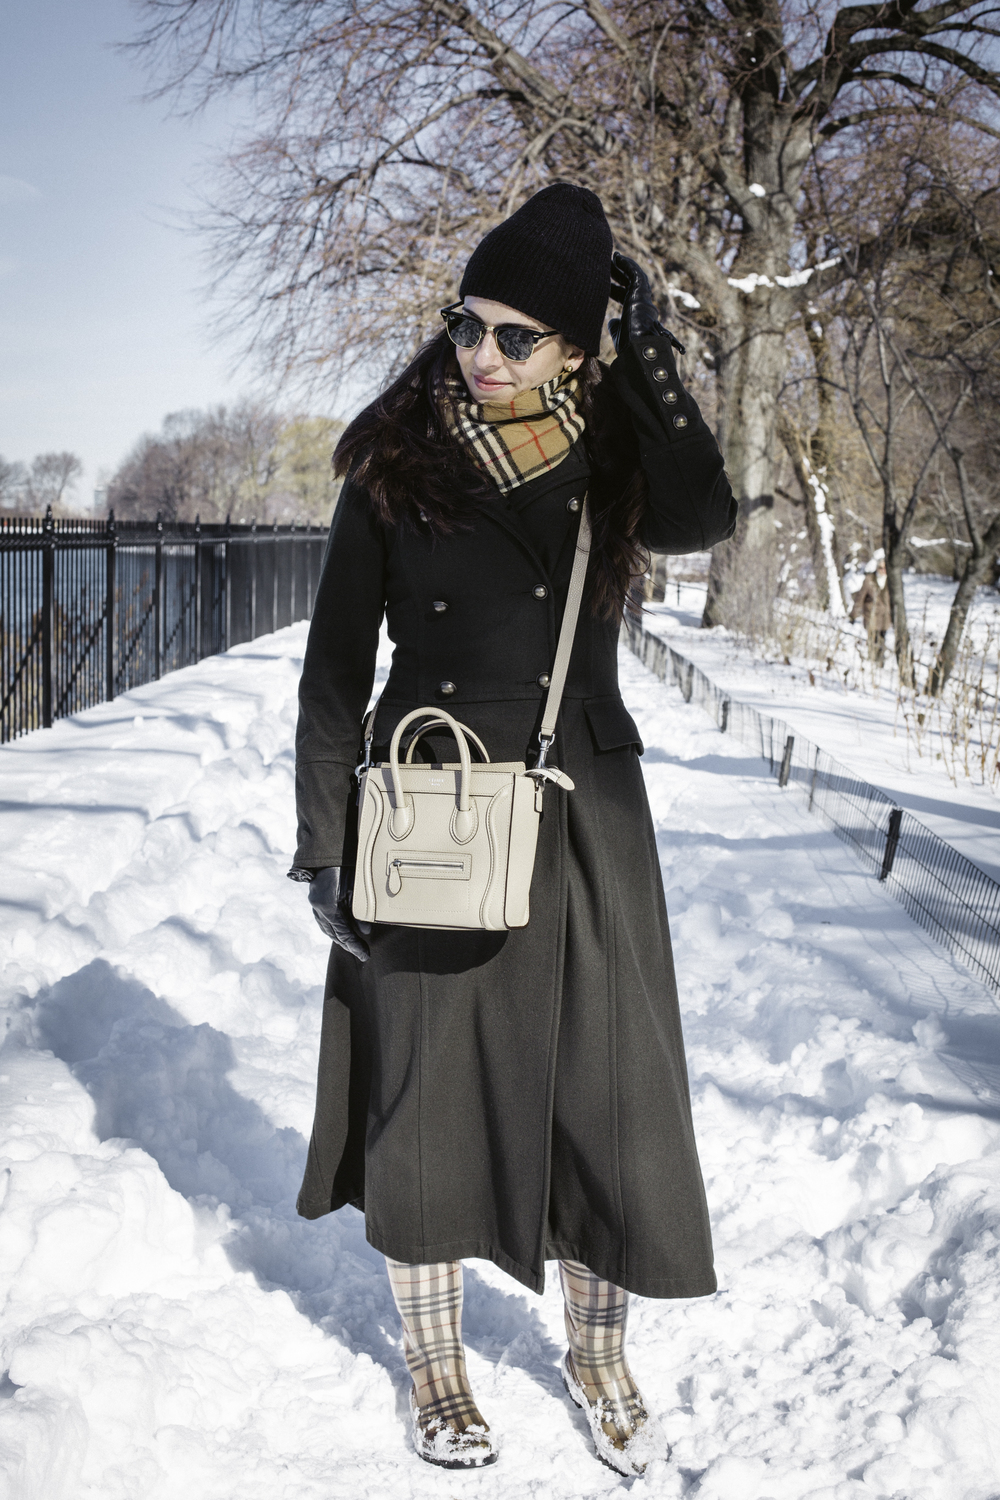 Walking Central Park in my  Burberry  rain boots and matching scarf,  Celine  Nano Crossbody bag,  Zara  military pea coat,  Urban Outfitters  beanie and  Ray Ban  sunglasses.  Photography by  Francisco Graciano .